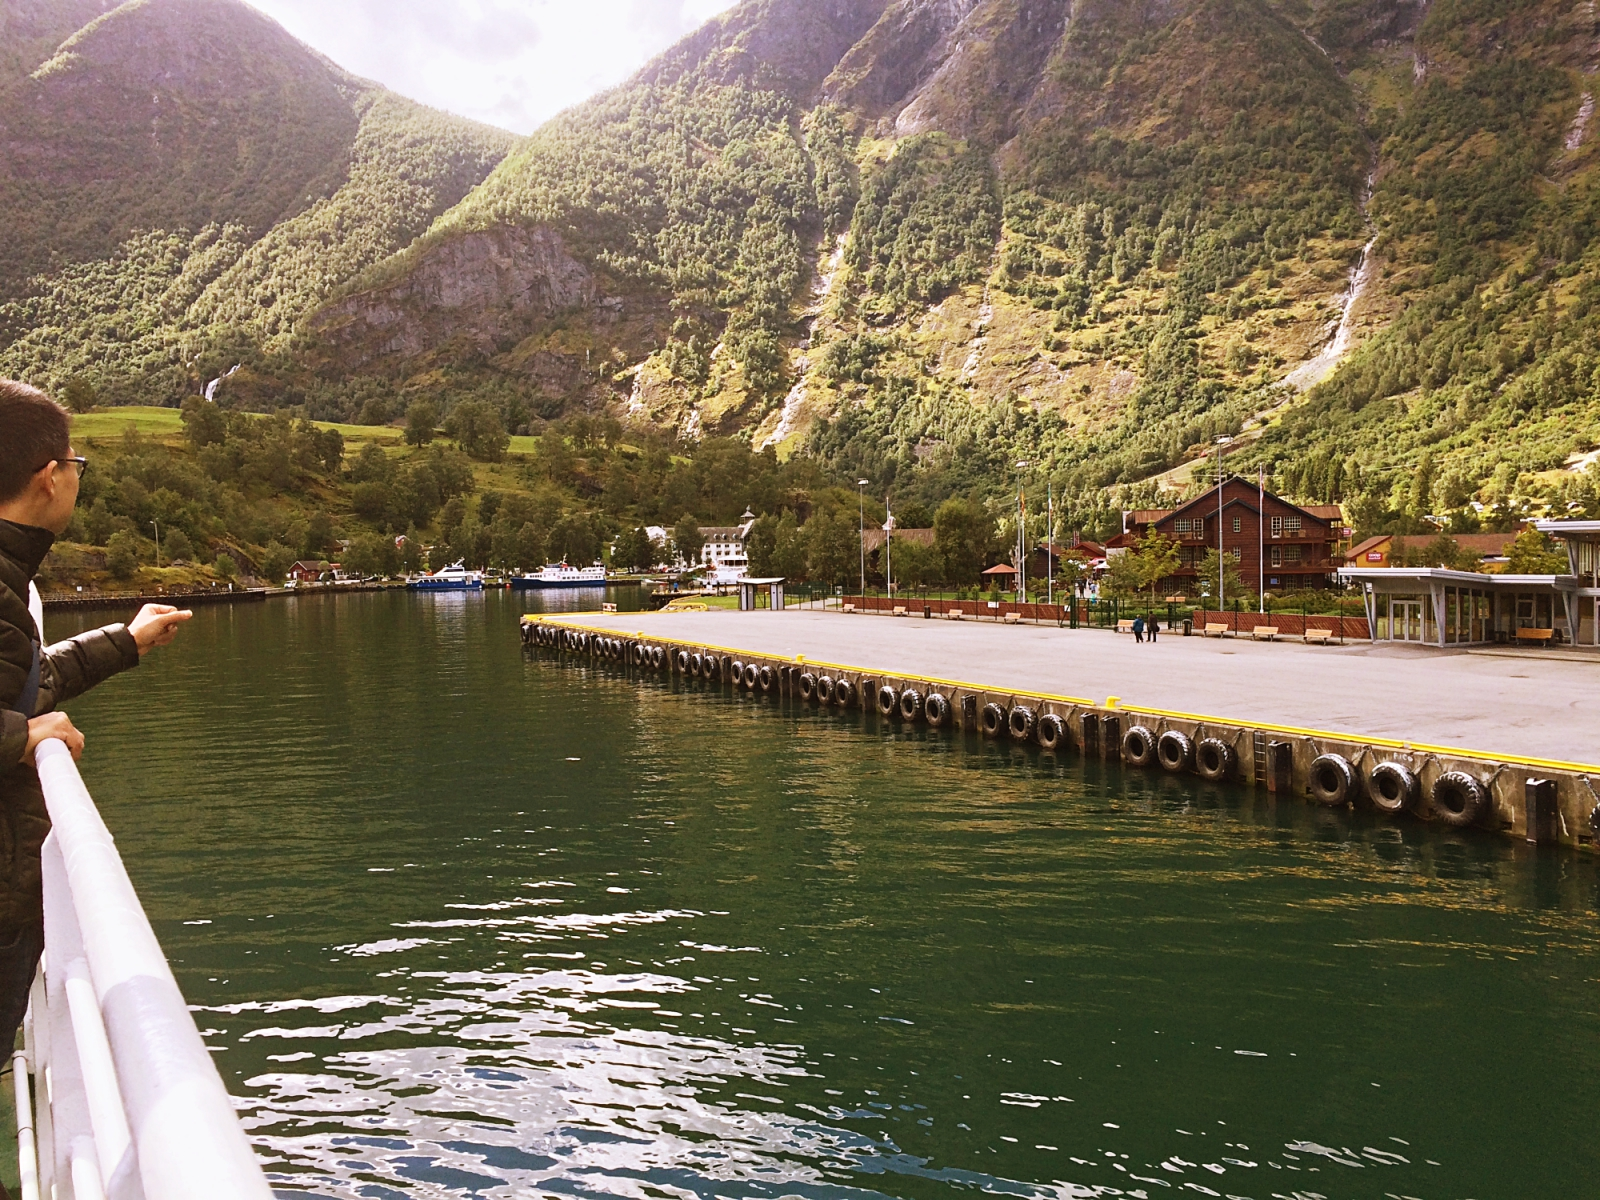 Arriving at Flam